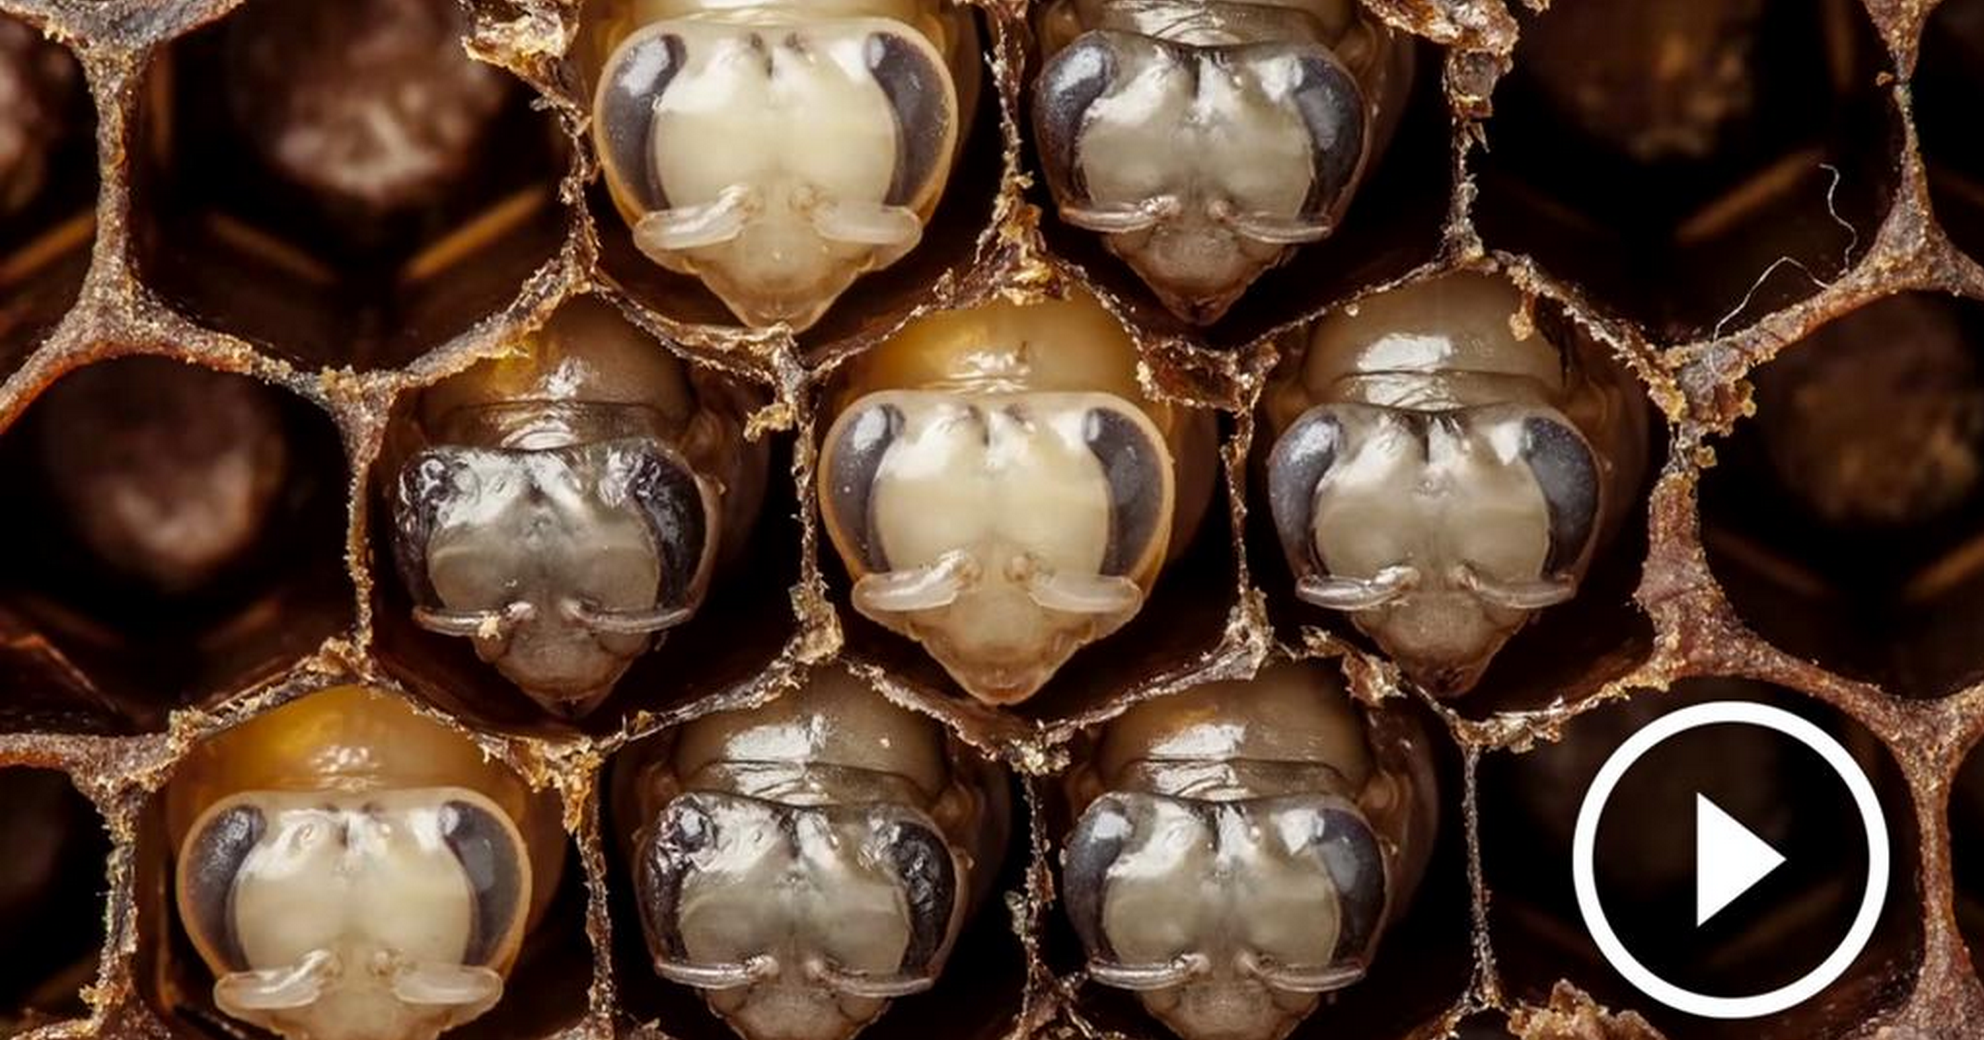 Incredible Bee's Time lapse Video